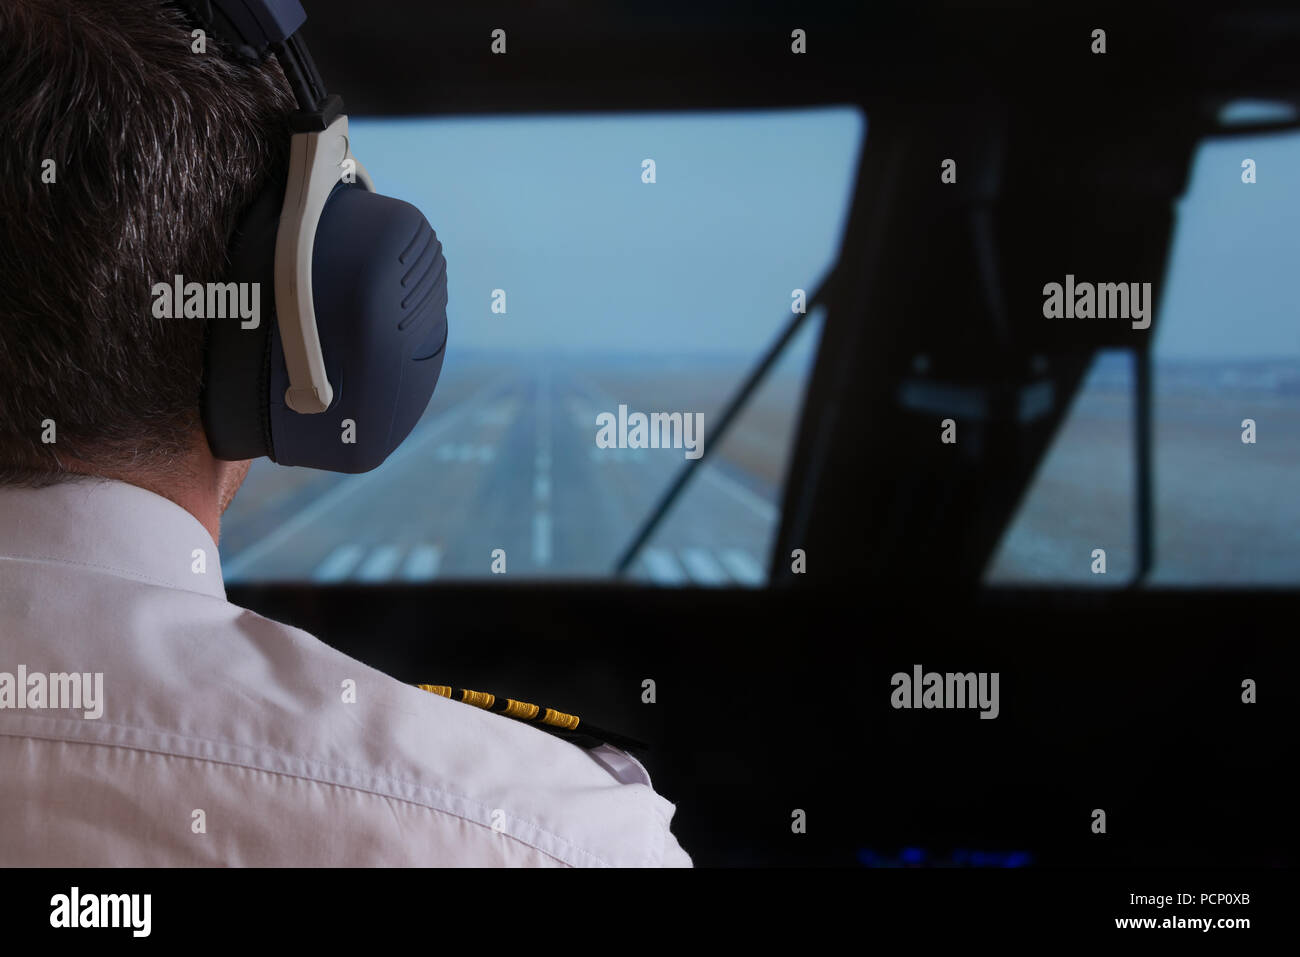 Close up of captain's epaulettes and headphones in the cockipt of commercial airplane - Stock Image